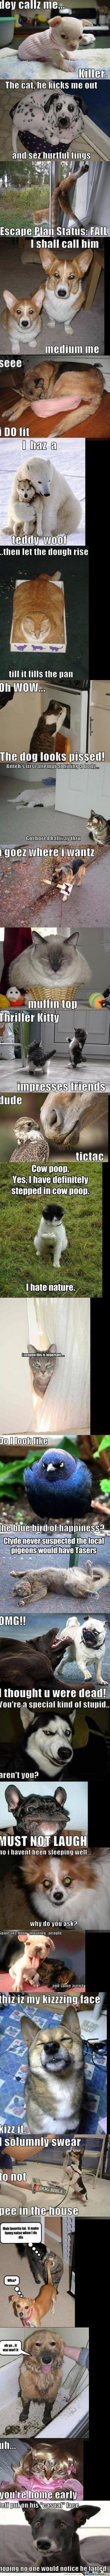 Funny animals- these r super cute!